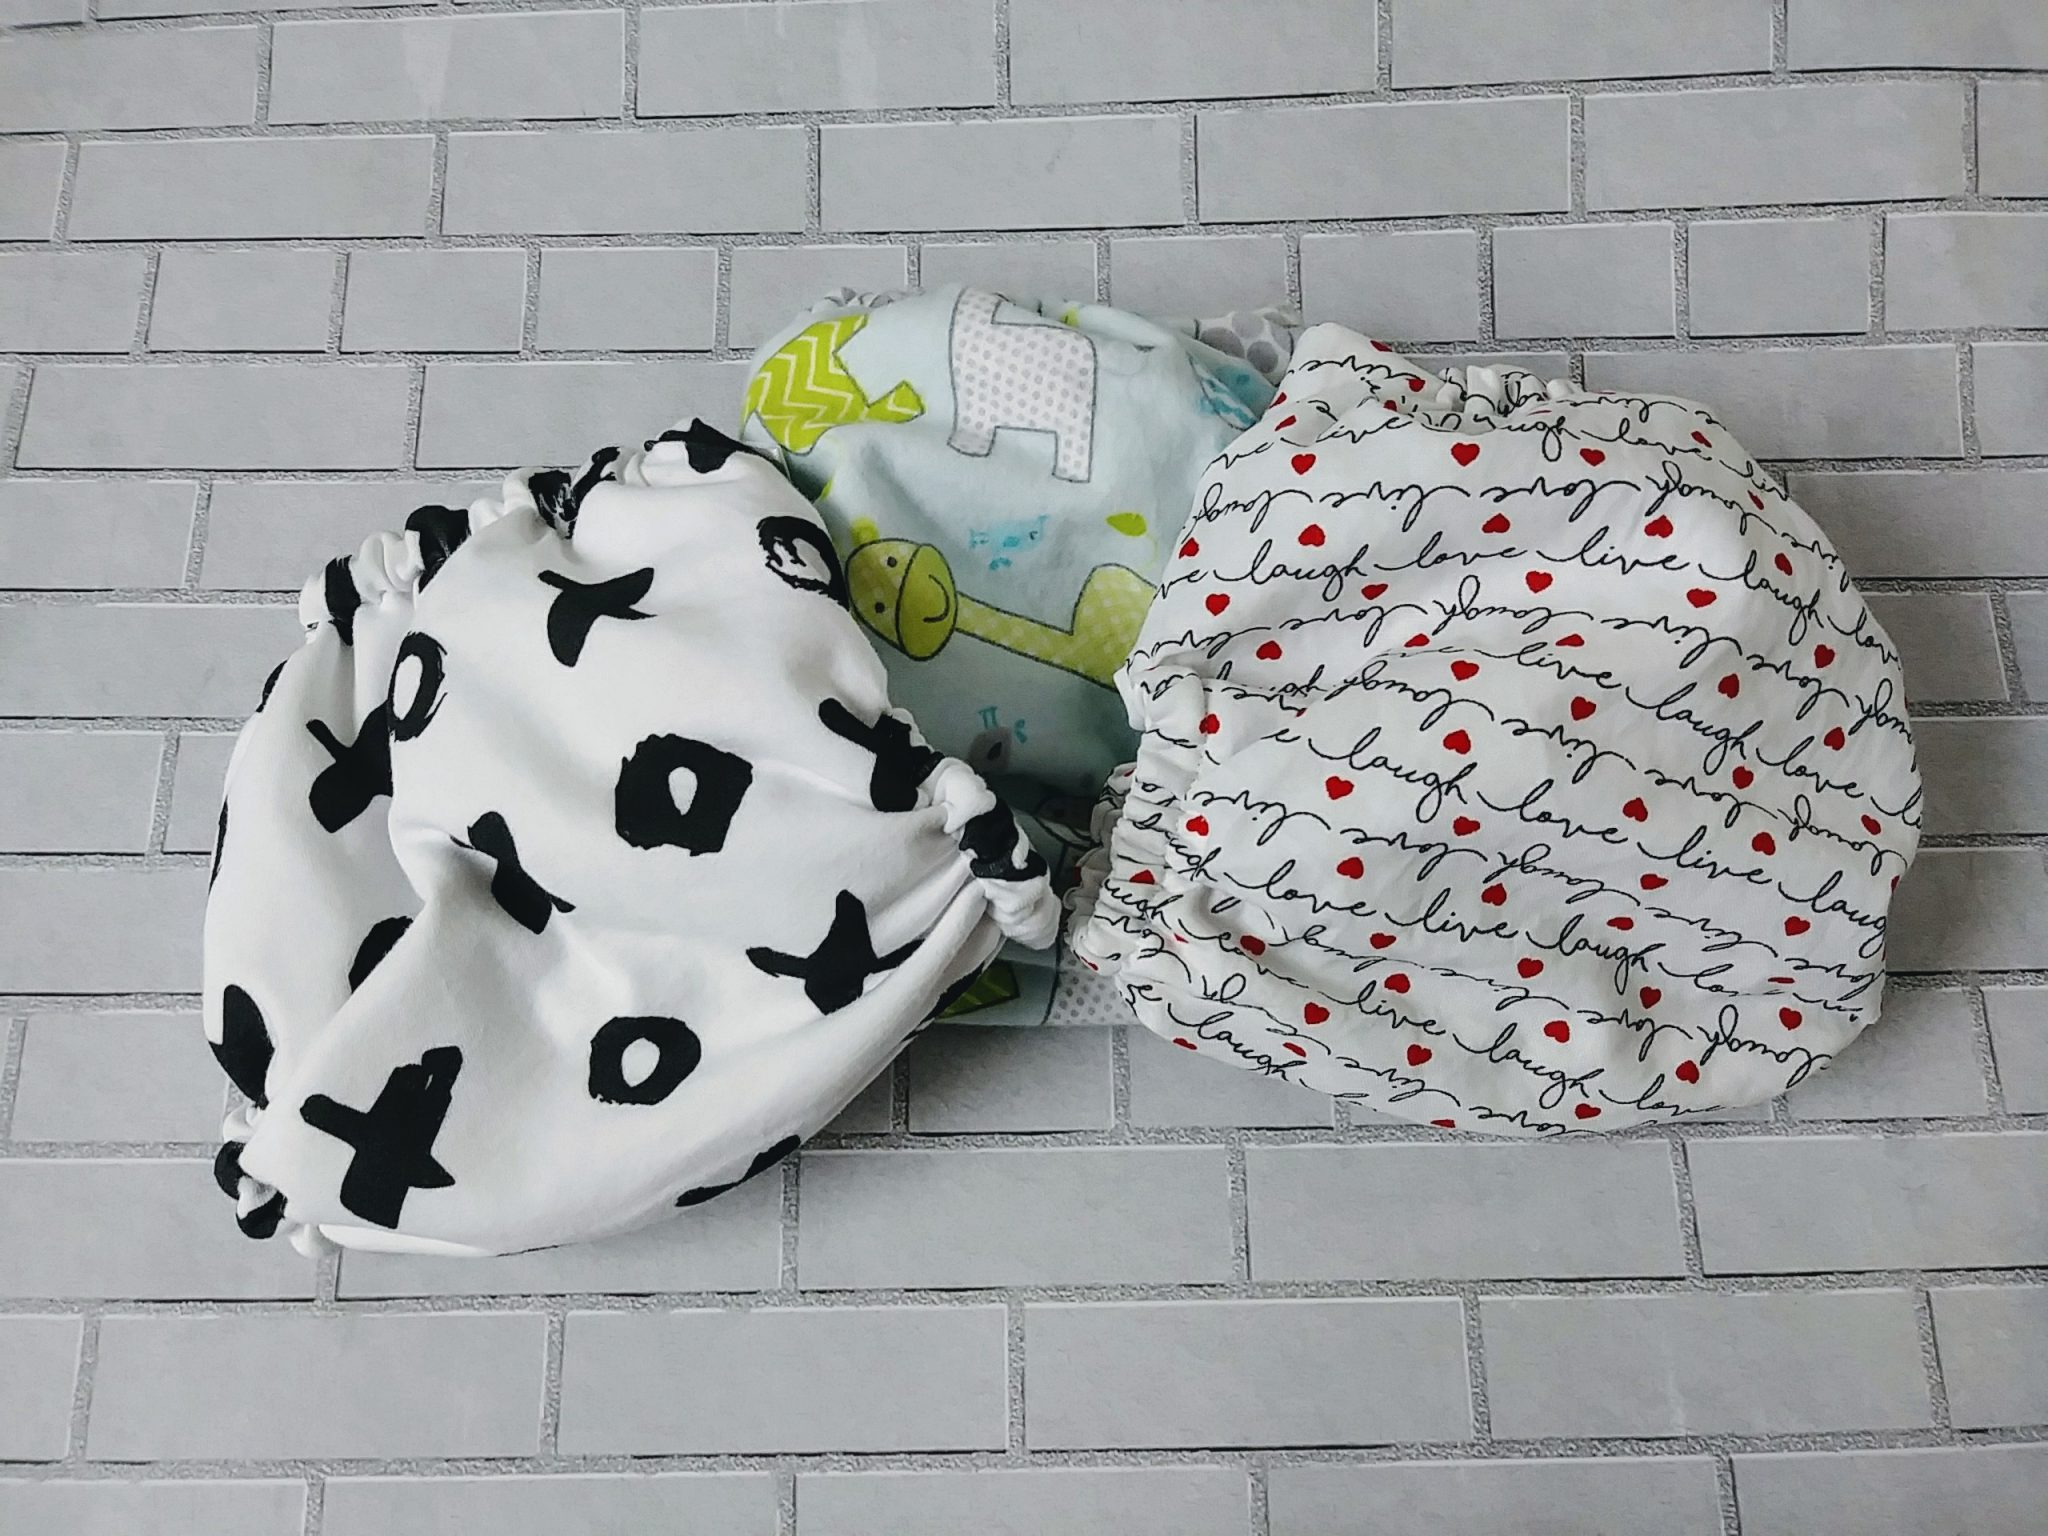 Guest Post: Cloth Diapering with Paige from Mama's Tiny Threads